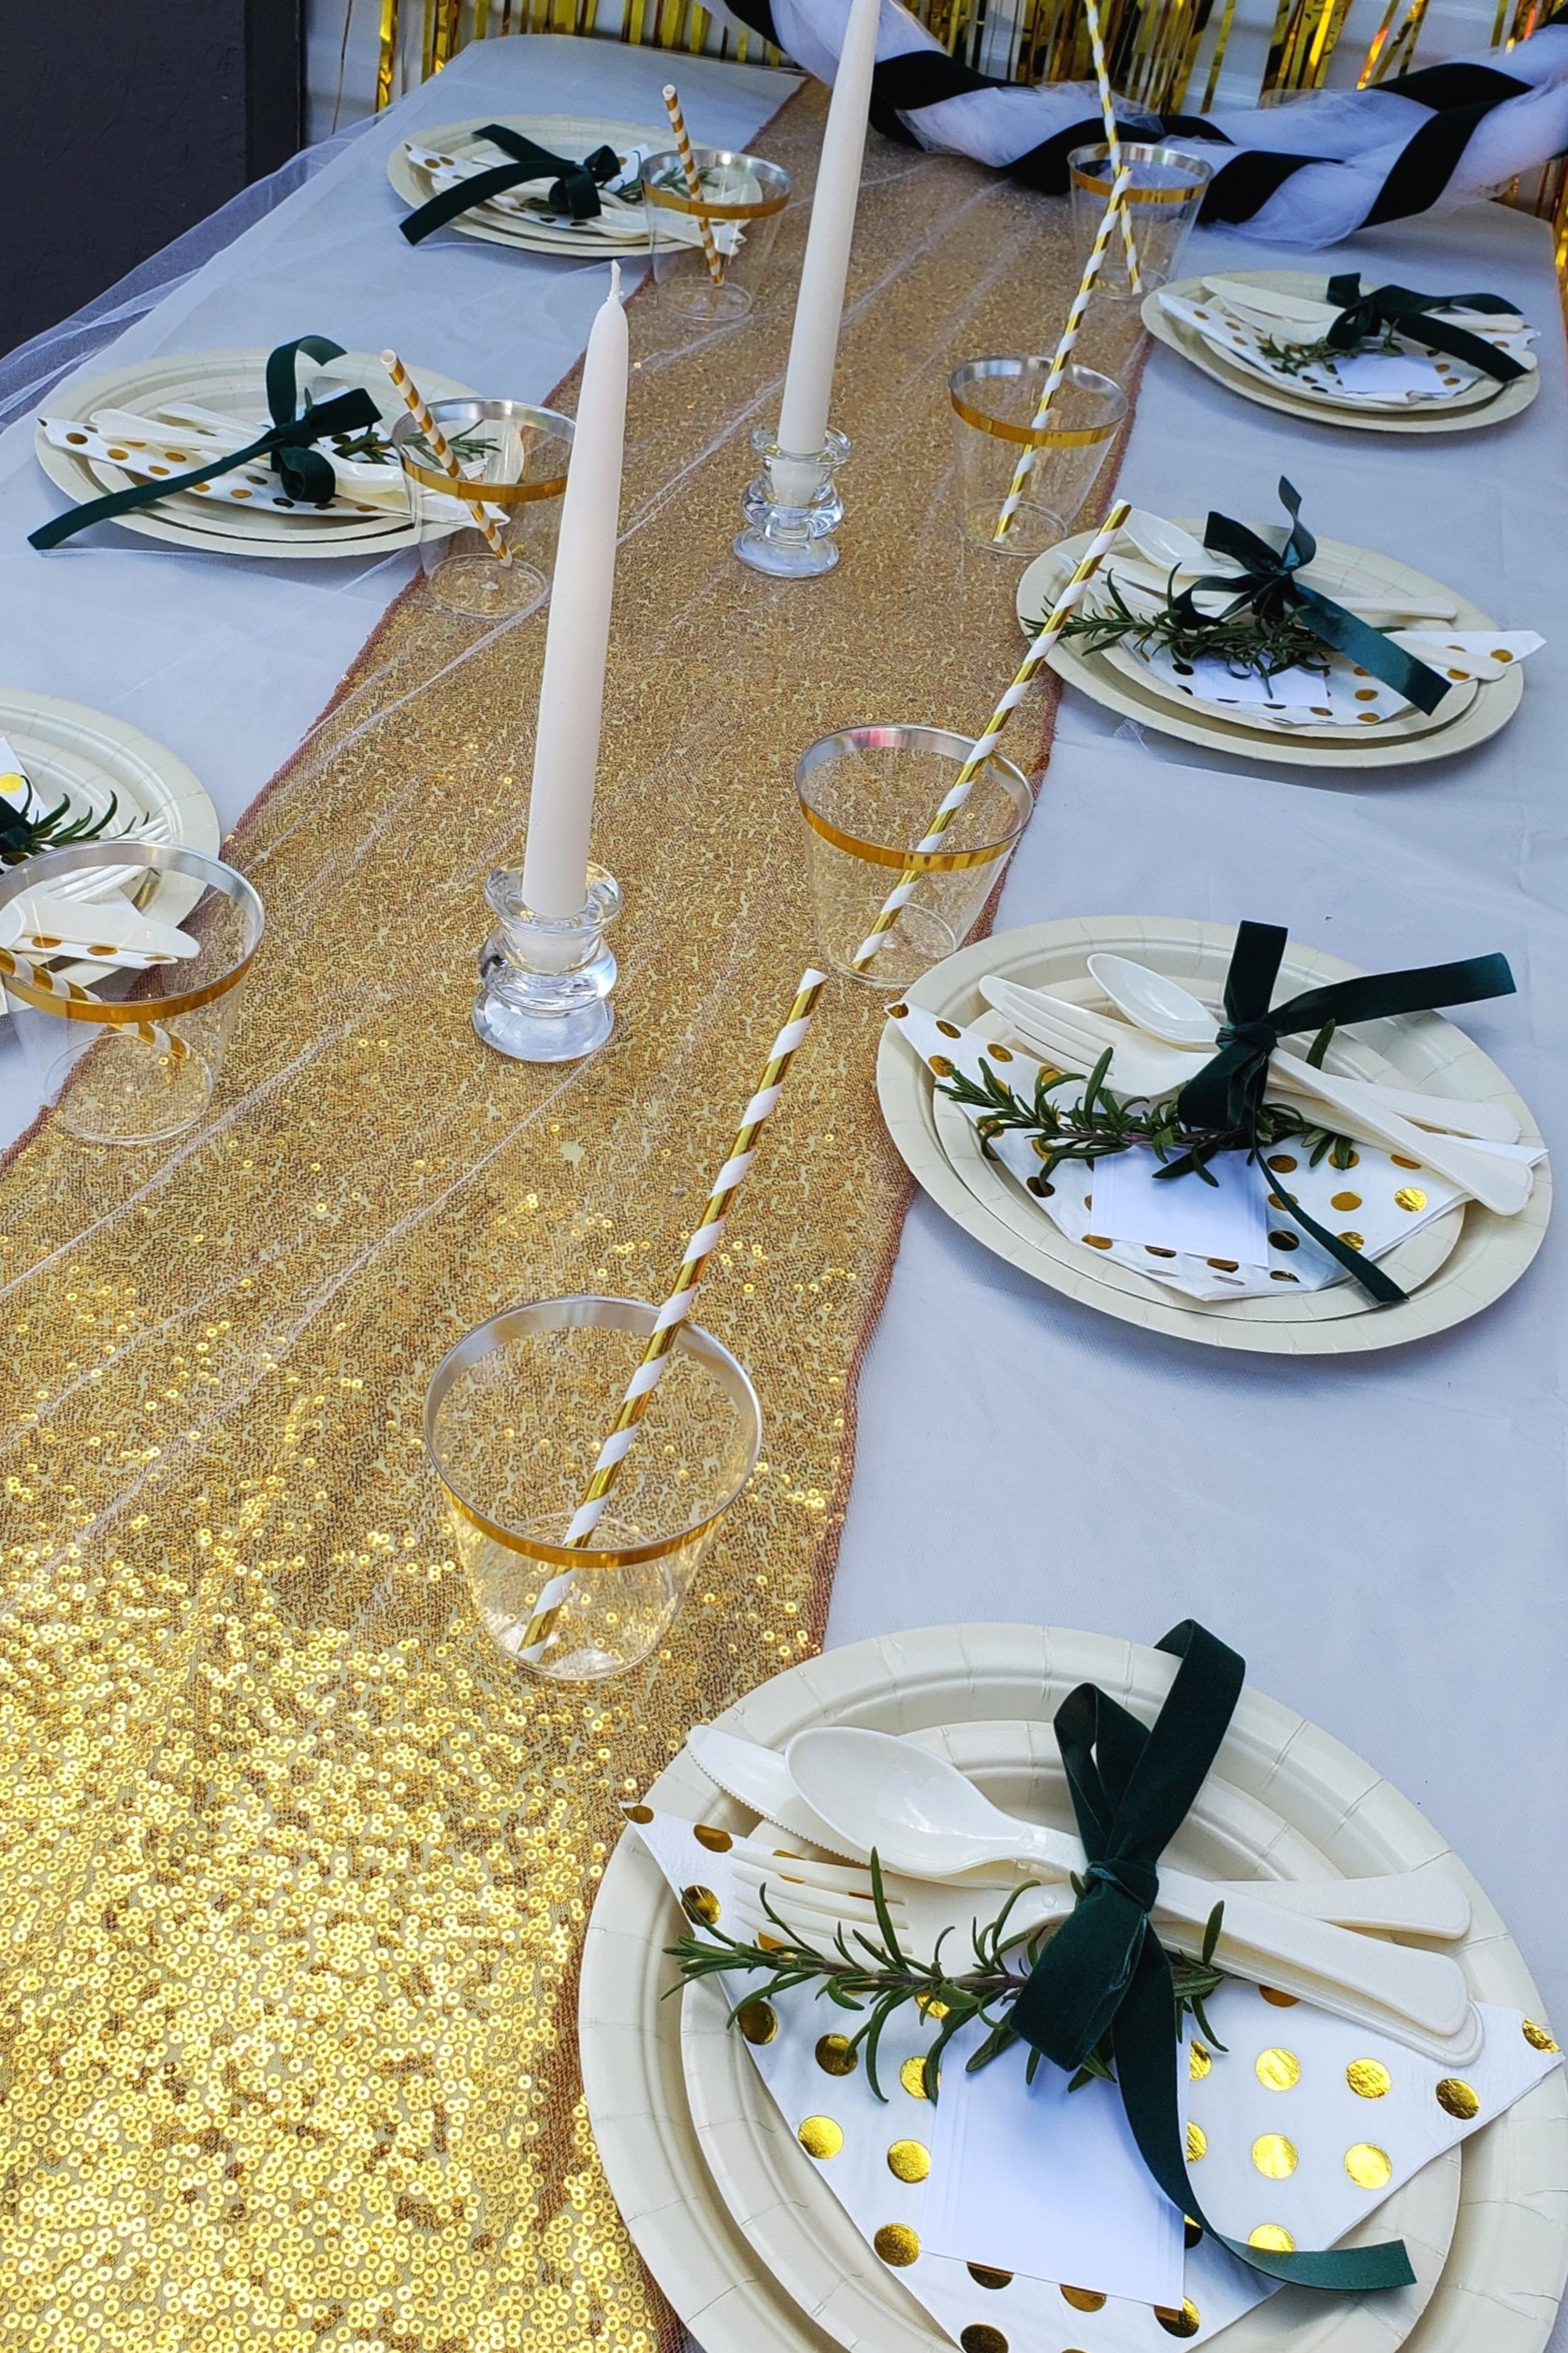 Green And Gold - Love hunter green but not ready to paint your kitchen cupboards? Why not try it for your next party! We used gold fringe curtains, a gold sequin table runner, gold foil napkins, gold cups and straws then added hunter green velvet ribbon for accent. Tuck in a sprig of rosemary and you have a beautiful table setting! Don't forget to try our delicious chocolate oreo dessert. So easy, you will have it whipped up in no time!